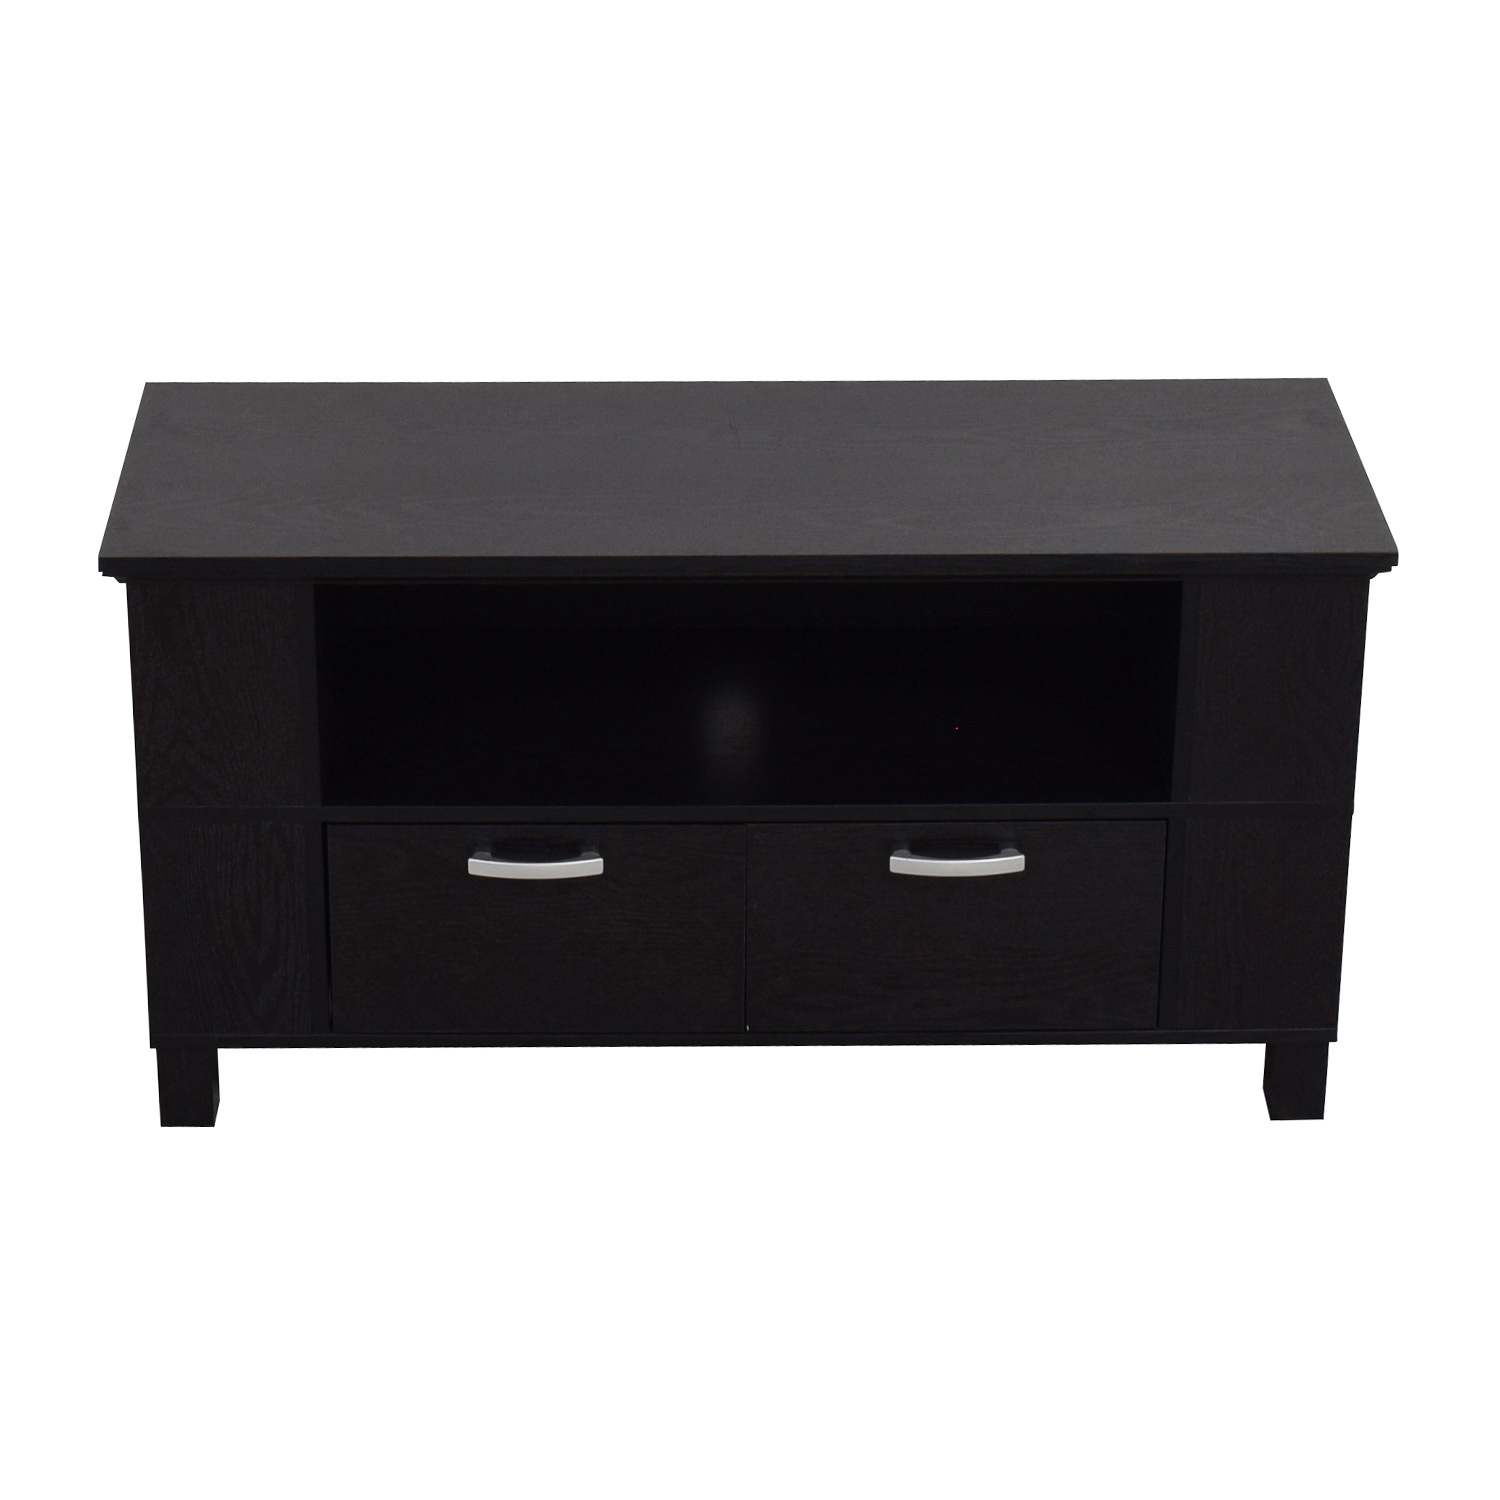 Shop Espresso TV Stand With Two Drawers With Chrome Handles Online